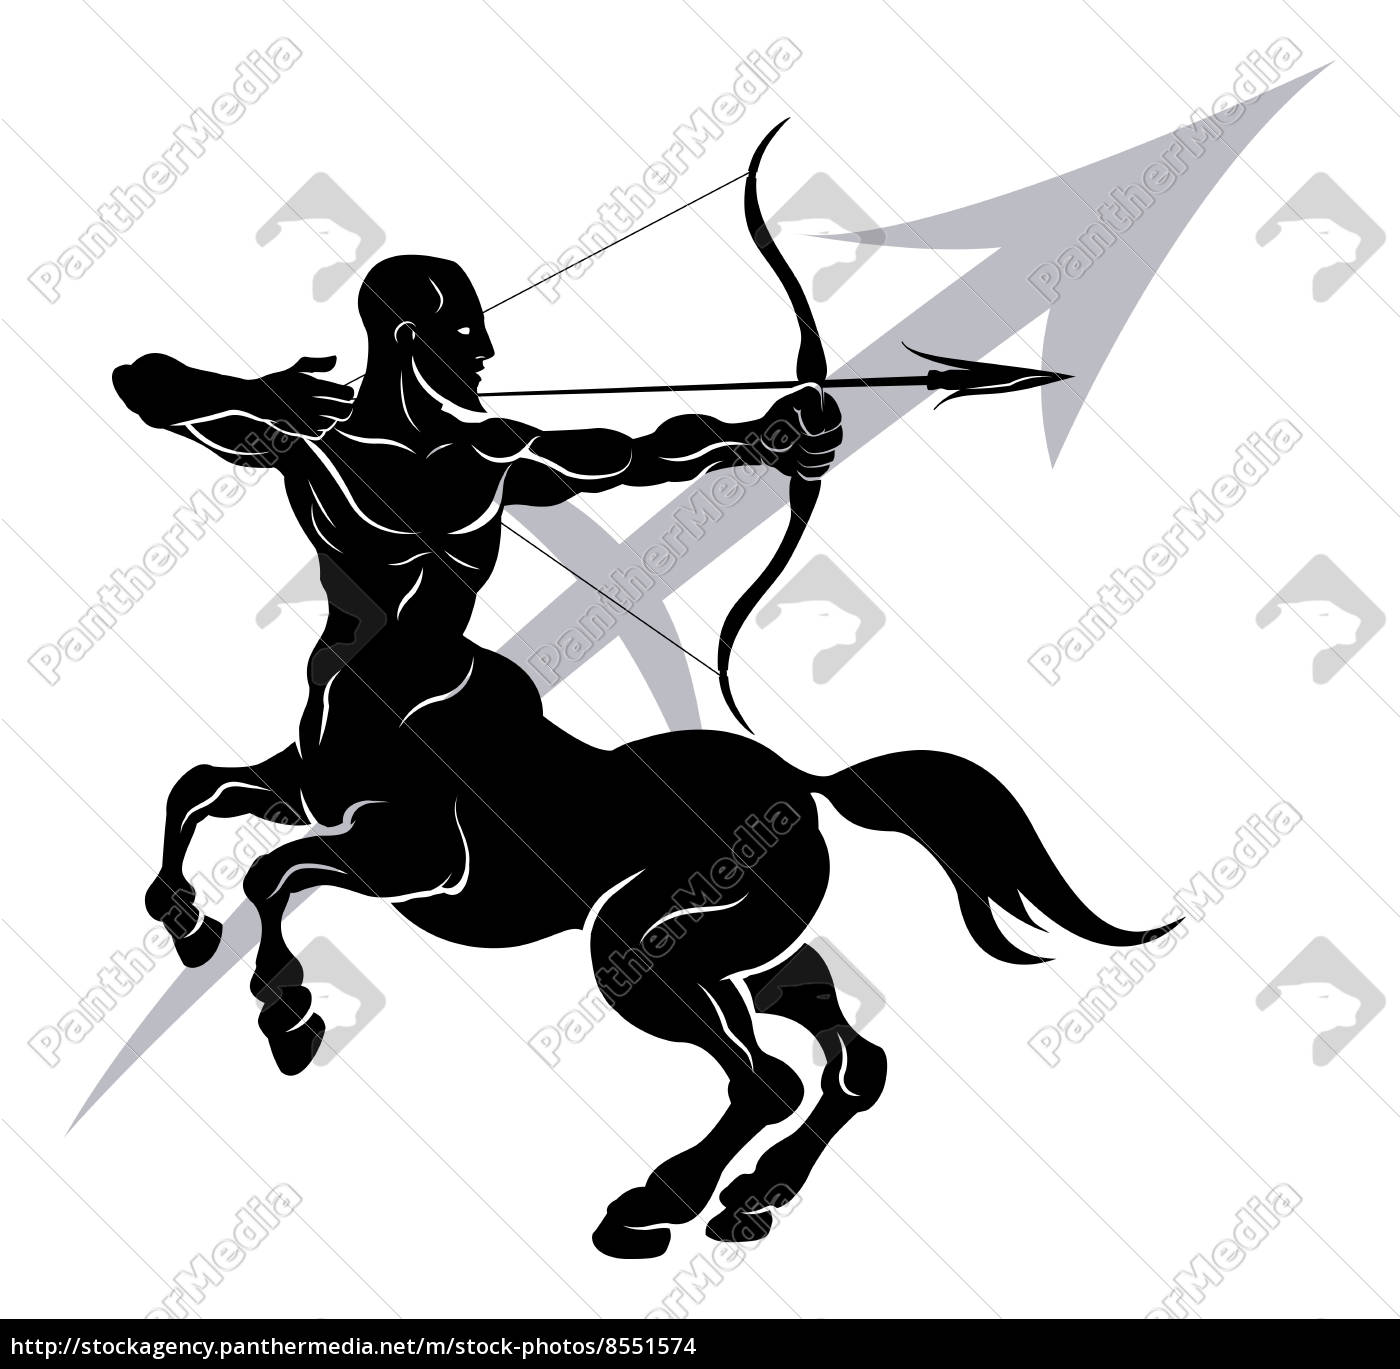 Stock image 8551574 - Sagittarius zodiac horoscope astrology sign